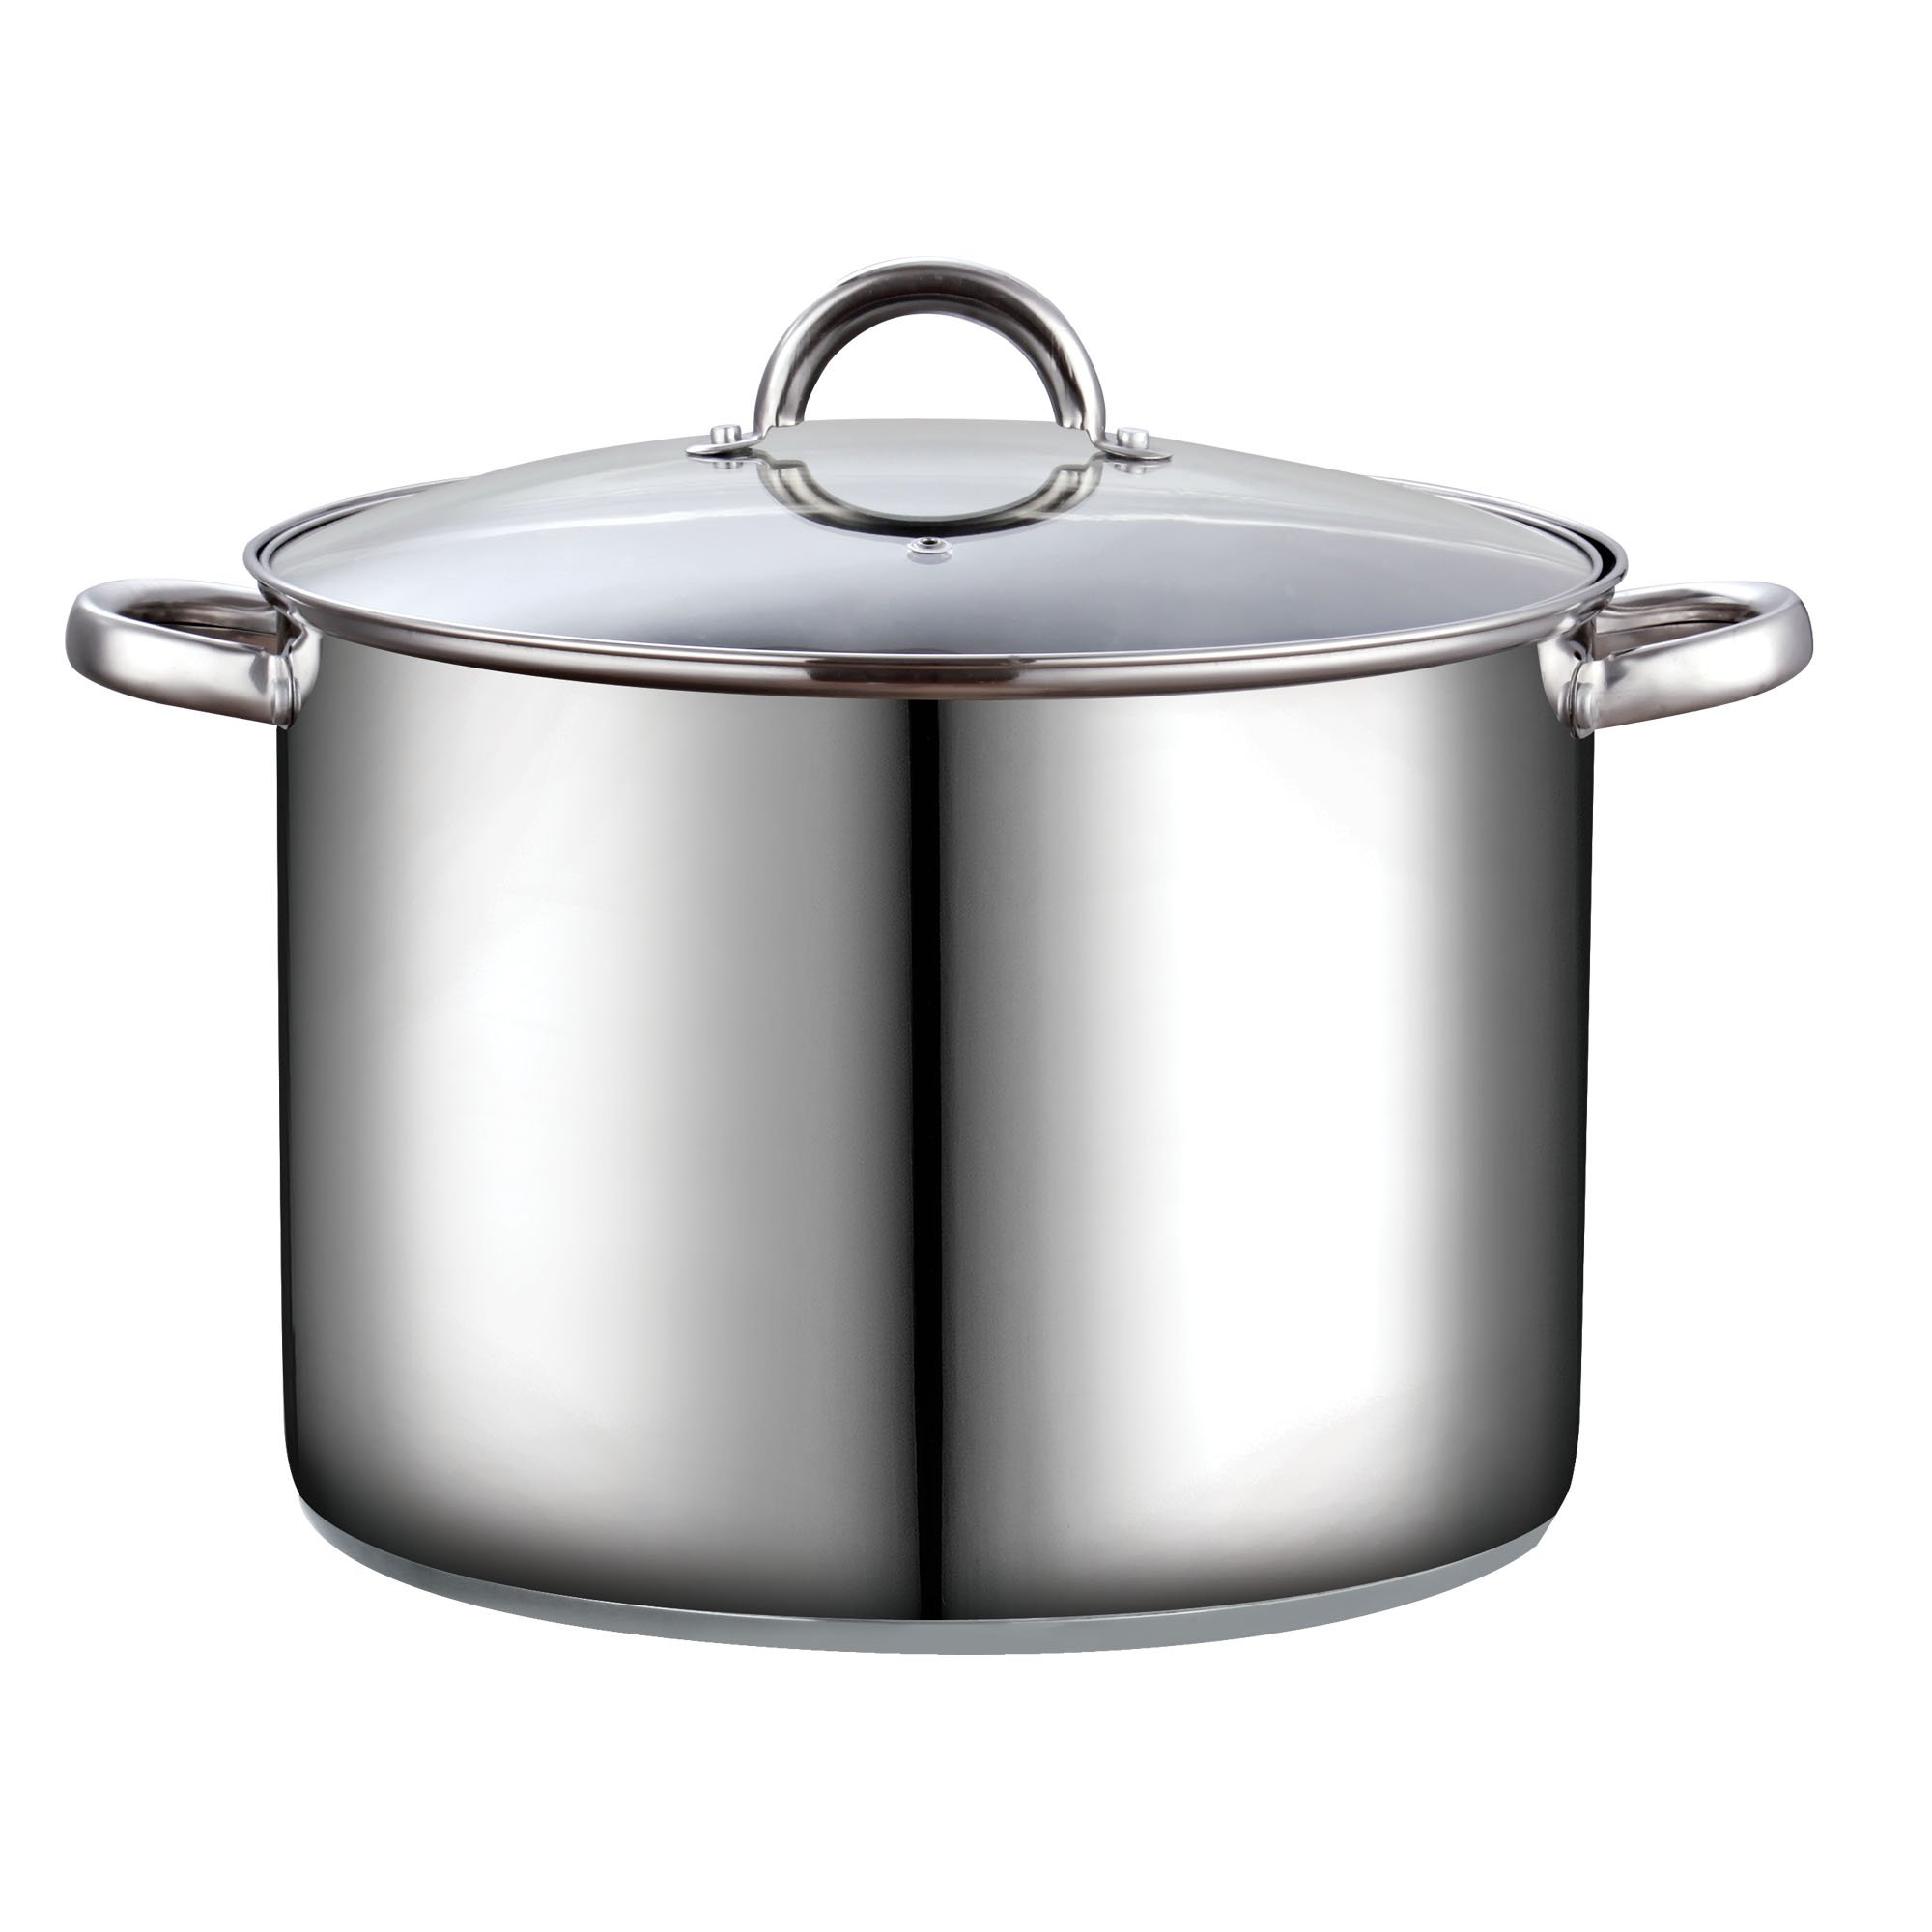 Cook N Home 16 Quart Stockpot with Lid, Stainless Steel by Cook N Home